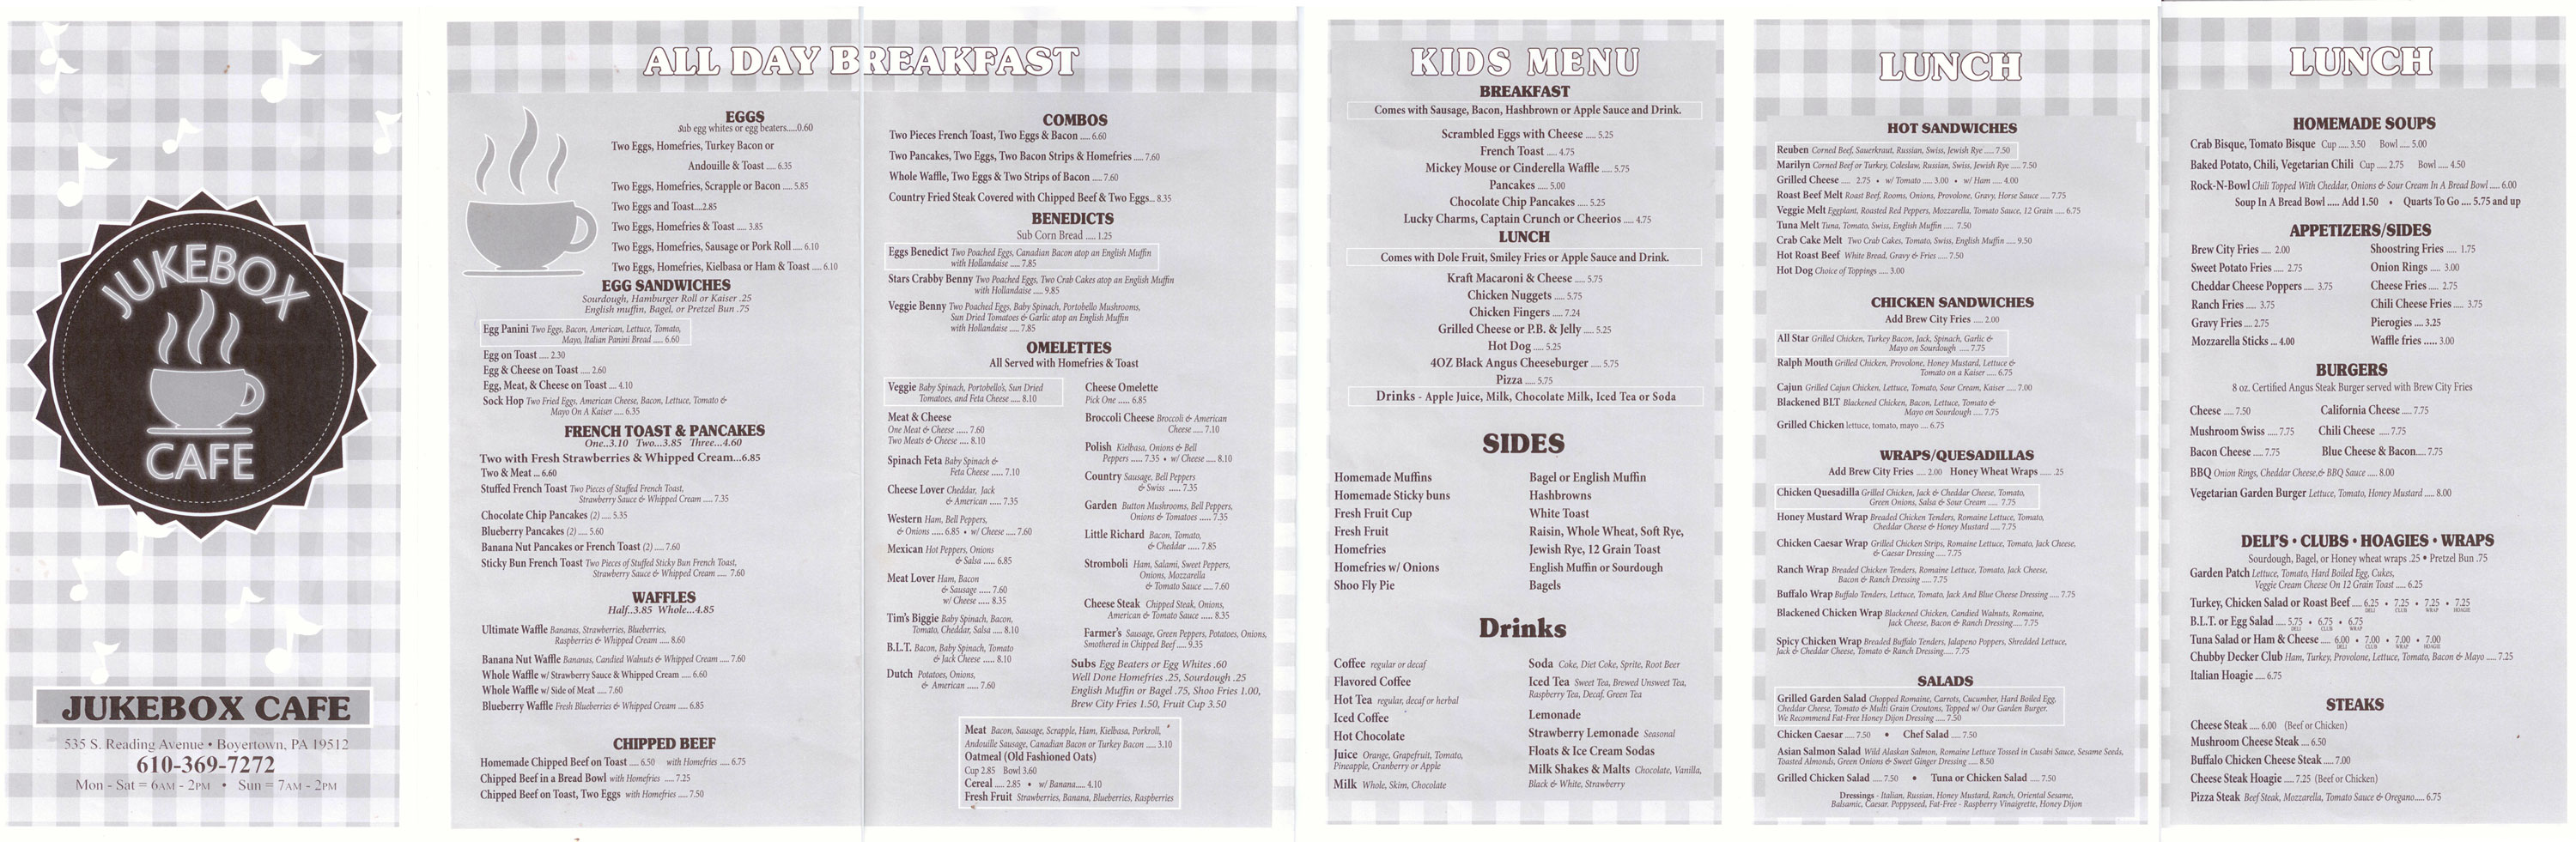 Jukebox Cafe Menu Berks Mont Menus